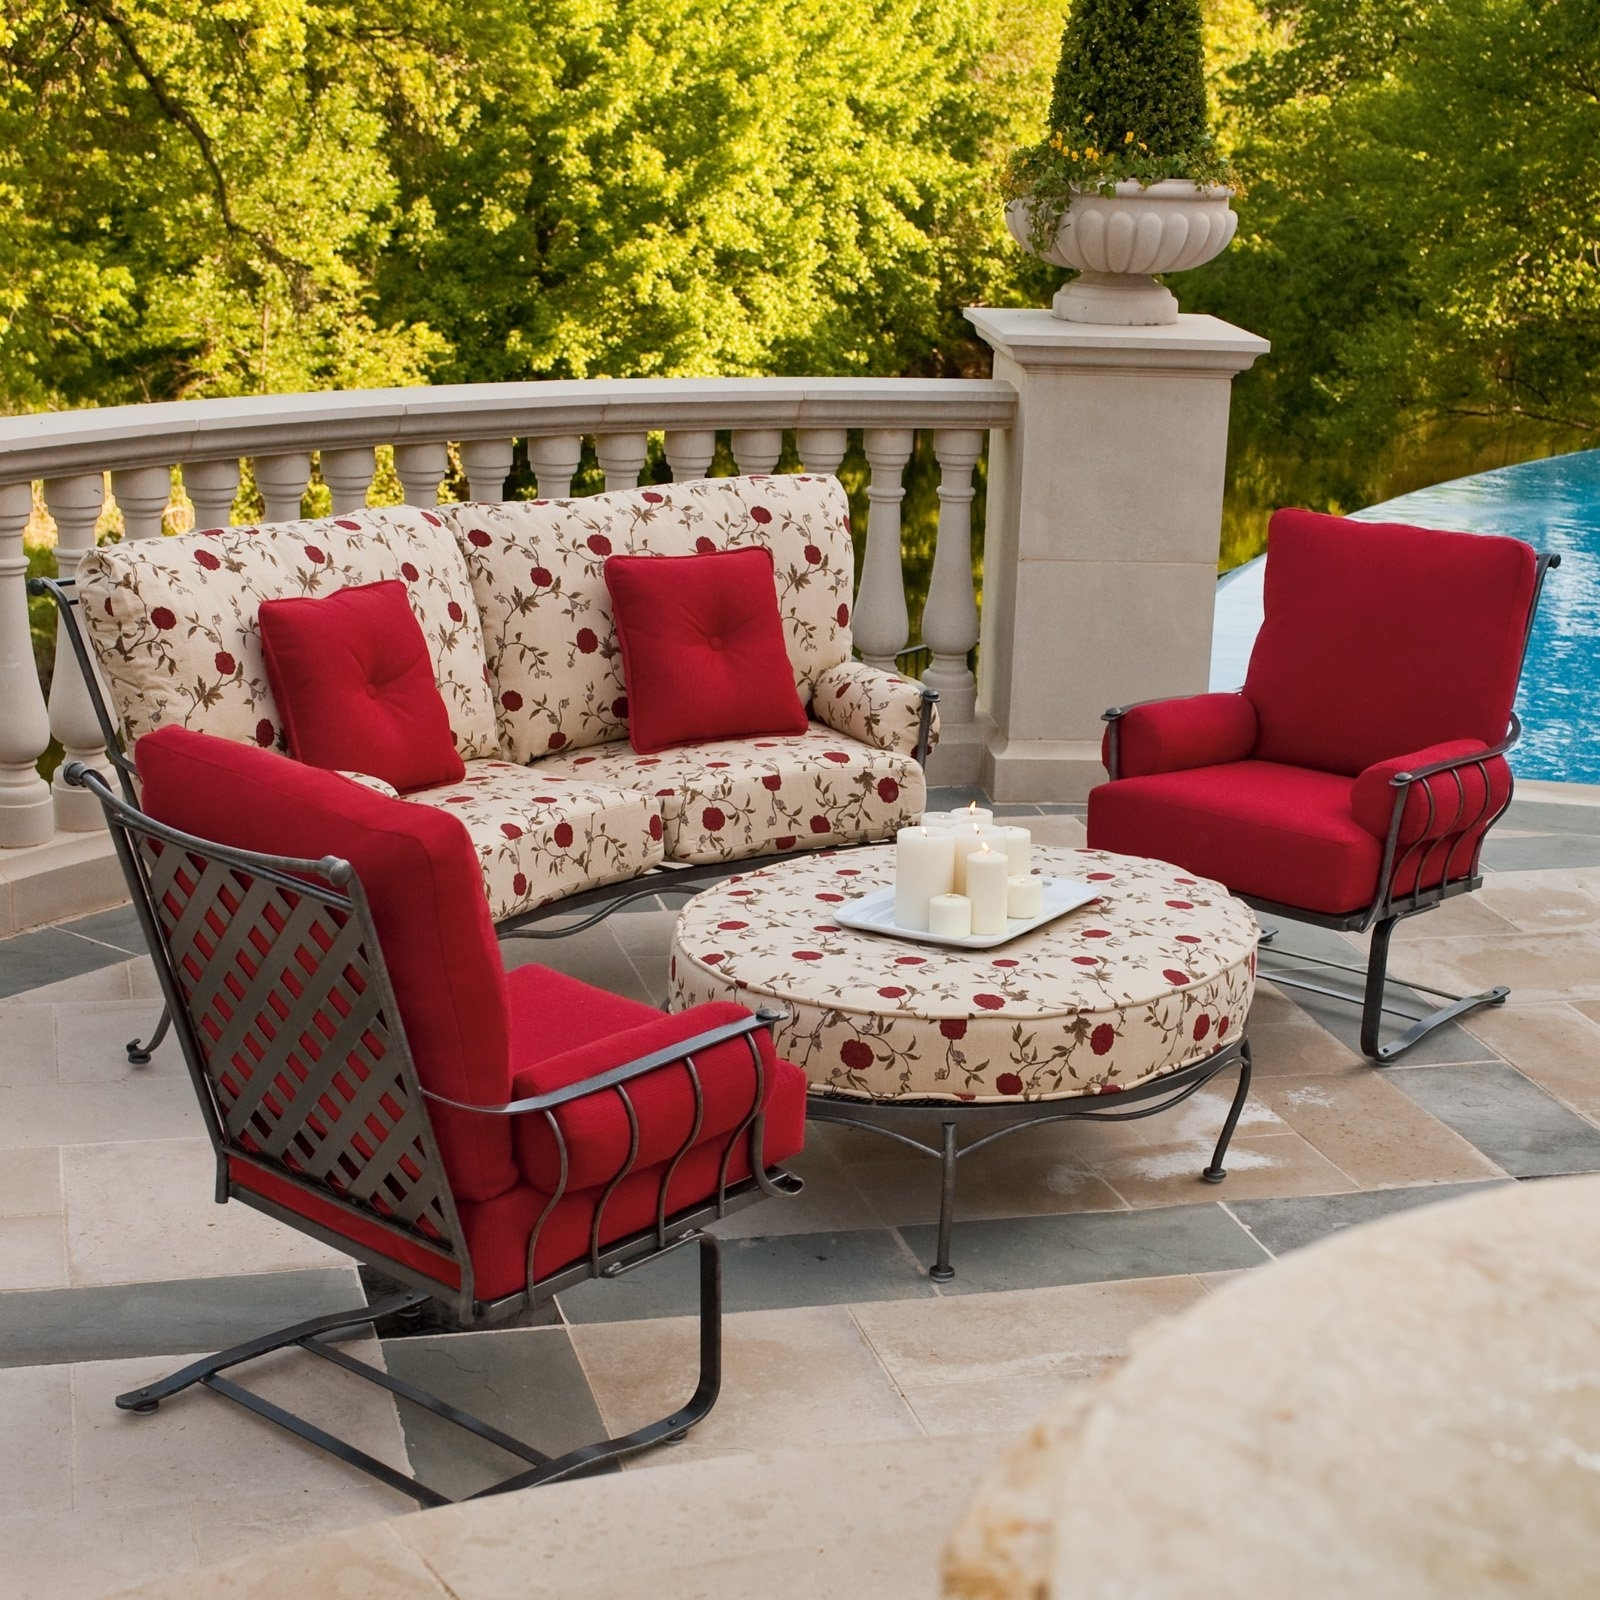 Patio Conversation Sets With Ottoman T40k In Excellent Home Design Pertaining To Recent Patio Conversation Sets With Ottoman (View 19 of 20)